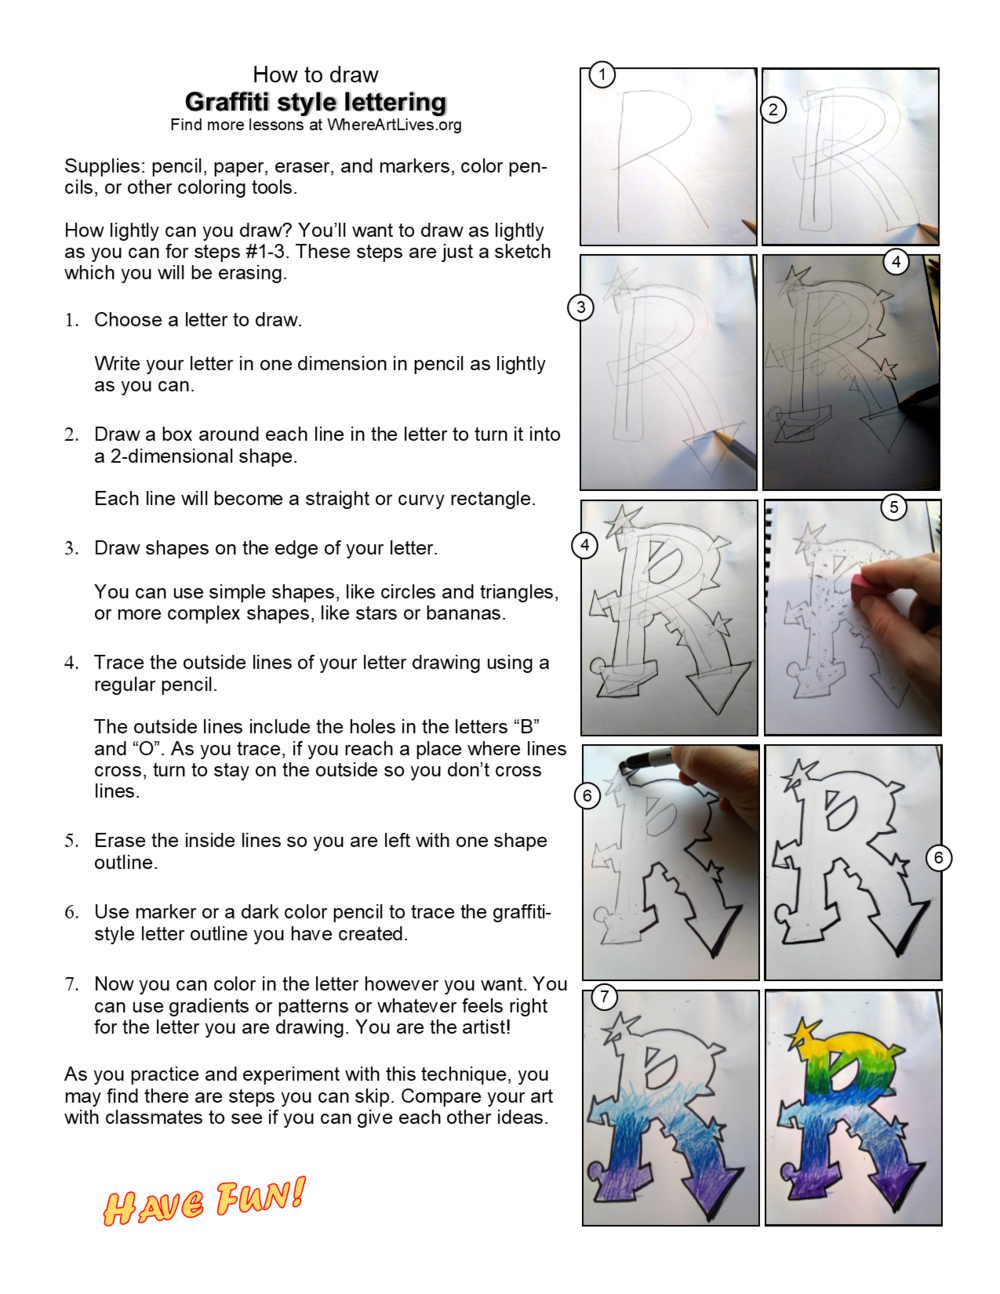 Download and print this step-by-step worksheet to pass out to your students. We know, the pictures of the pencil drawings may not photo-copy well. This may work best in conjunction with the slideshow.